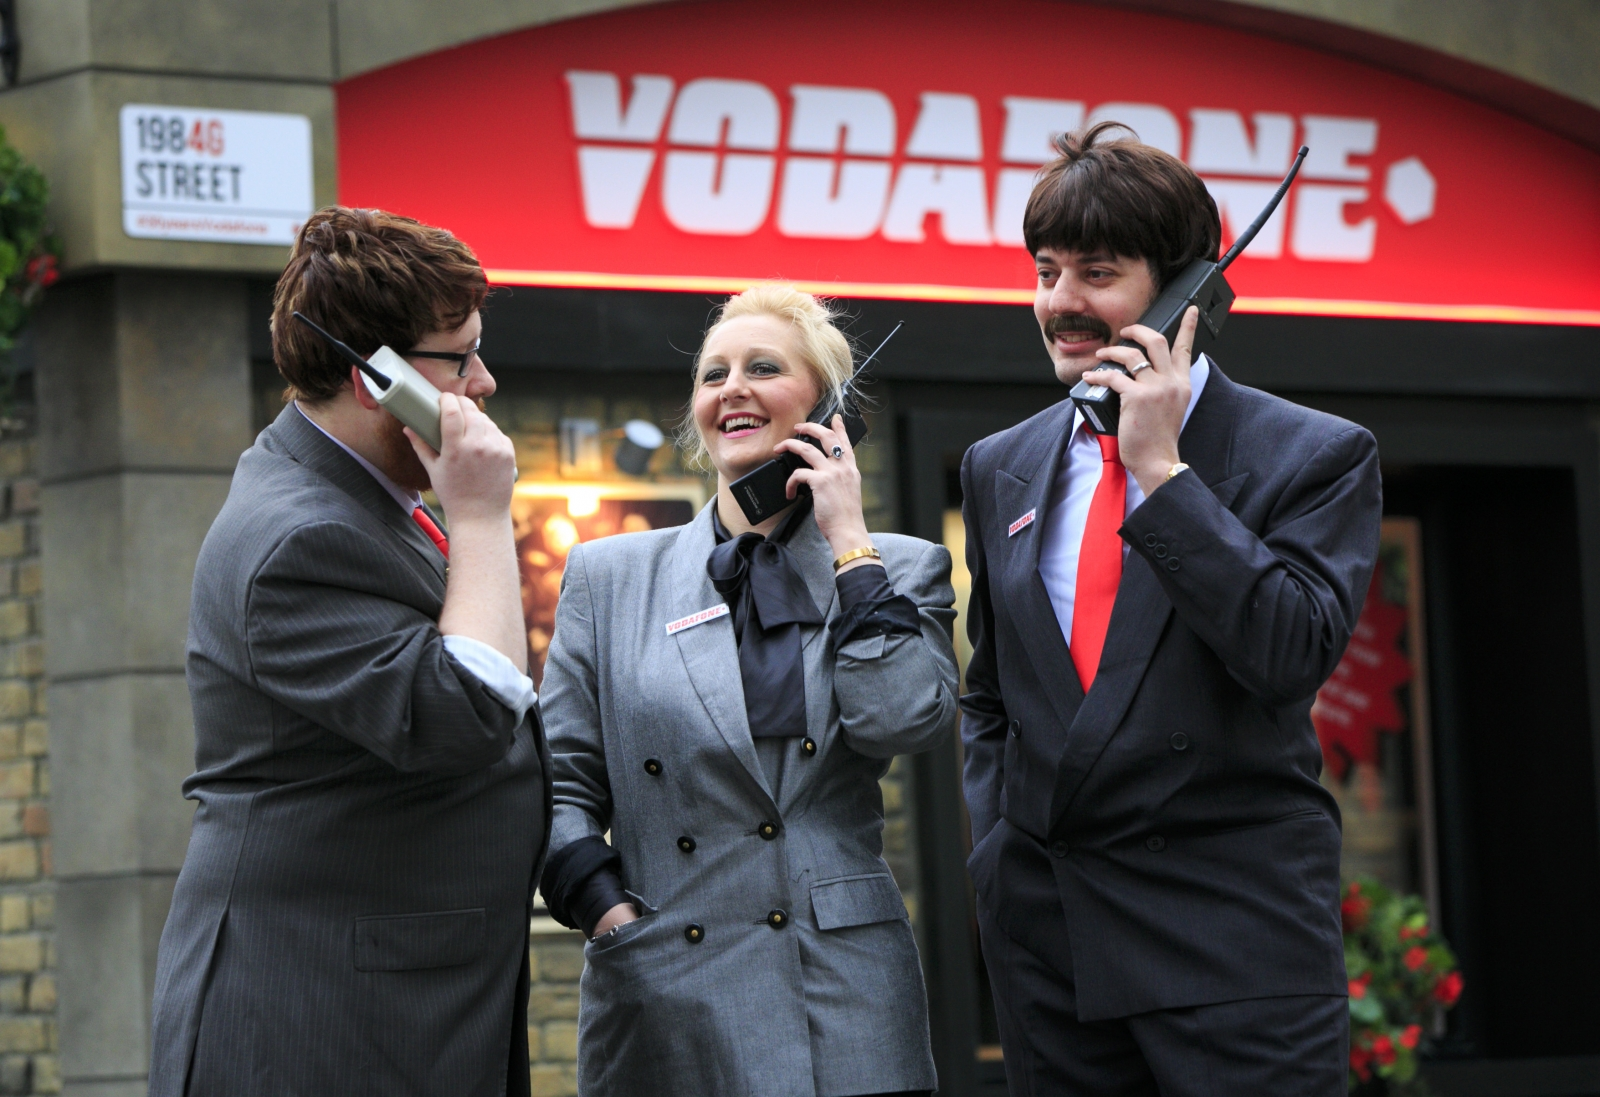 Back to the Future: Vodafone launches 1984G Street to honour UK's first mobile phone call